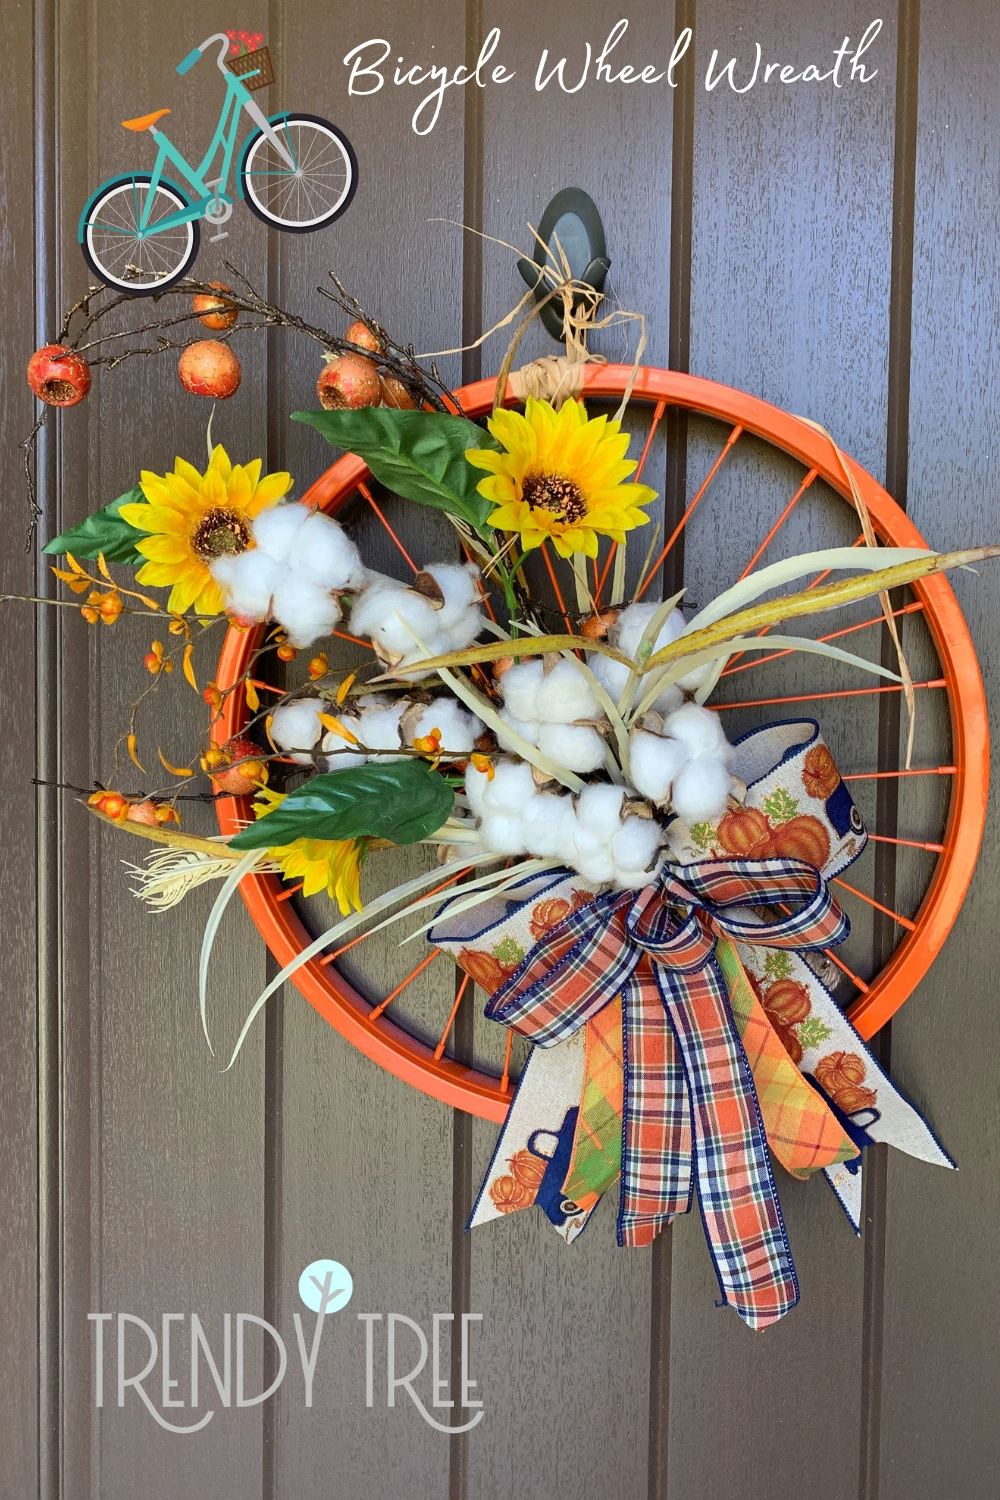 Fall Bicycle Wheel Wreath — Trendy Tree Visit the Trendy Tree blog to see the video tutorial